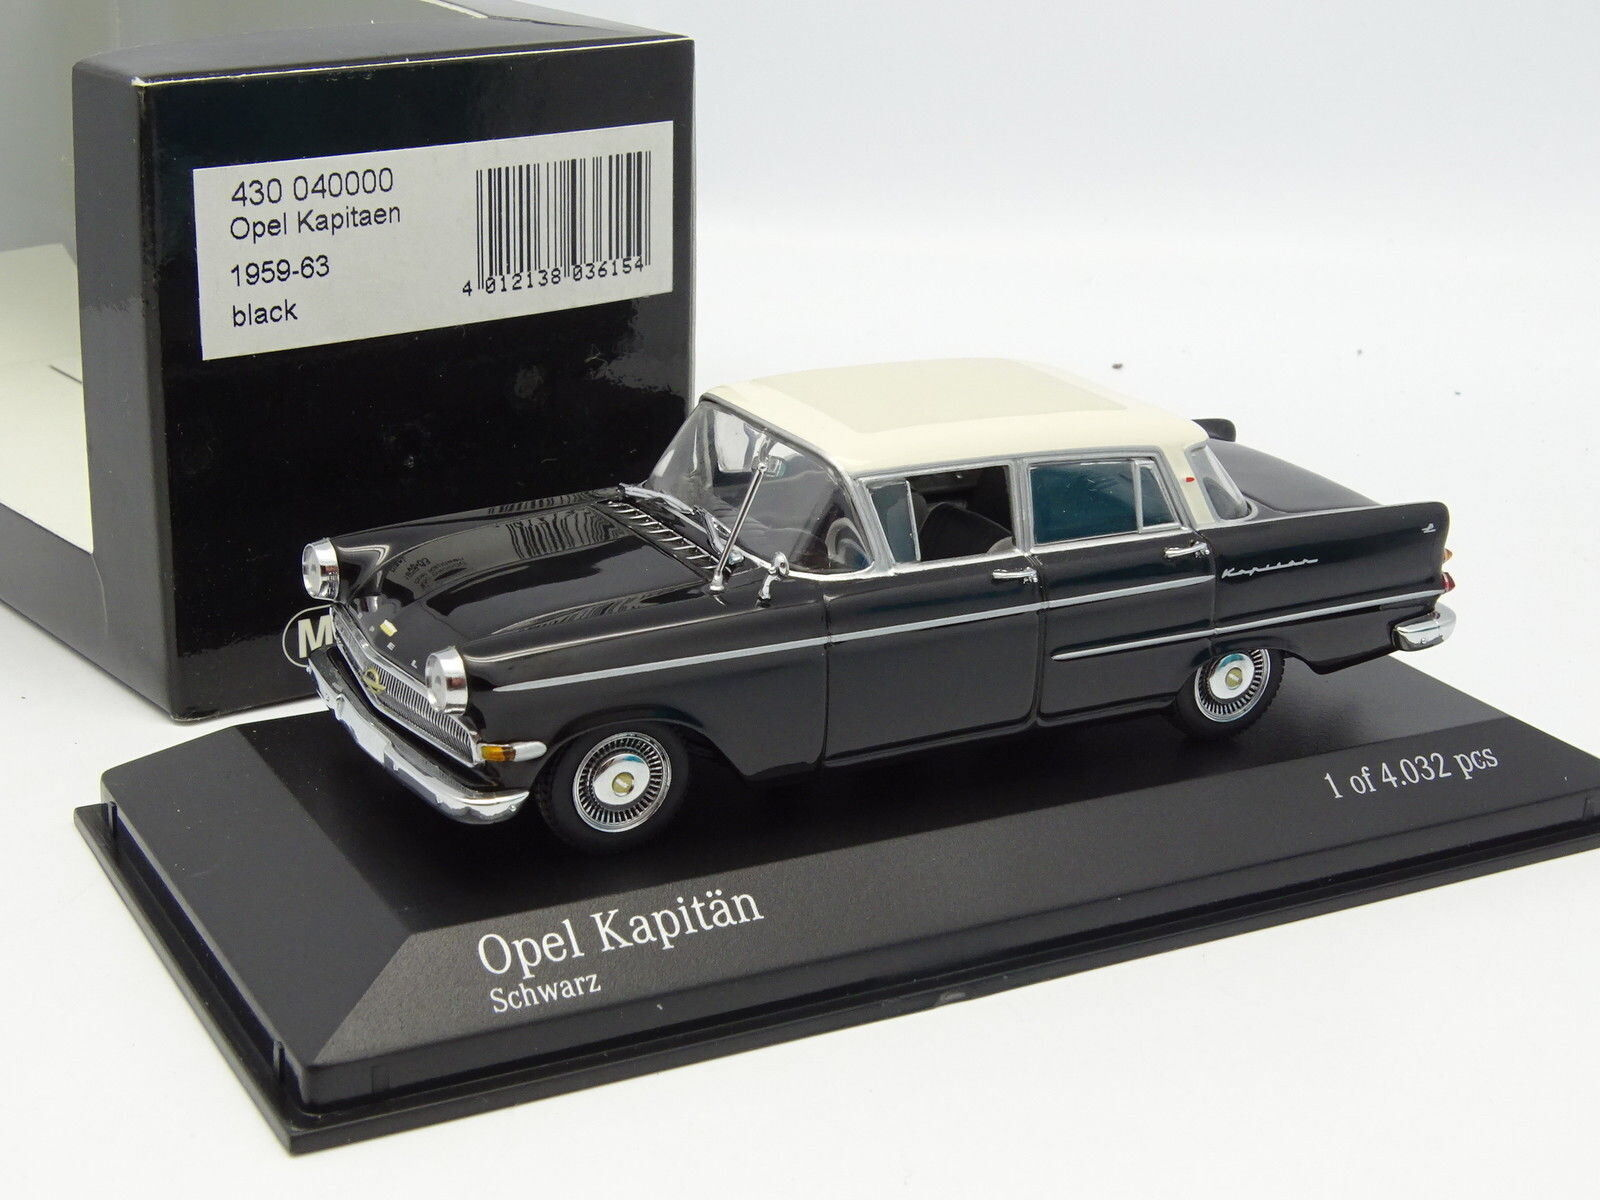 Minichamps 1 43 - Opel Kapitan 1959 blacke